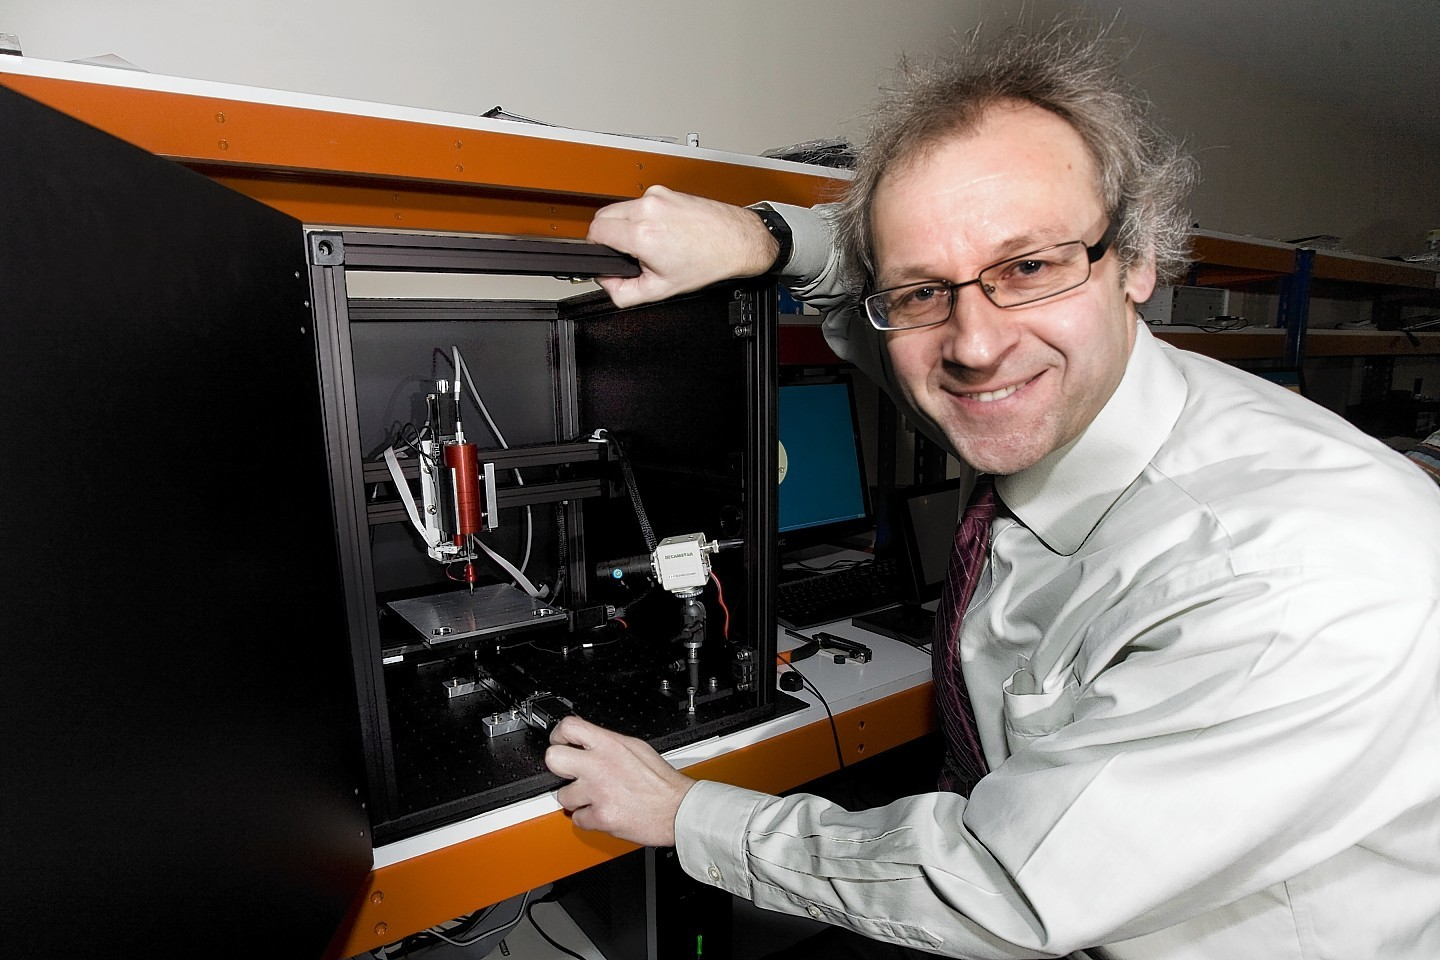 Professor Iain Baikie ceo of KP Technology, Wick, with one of the company's products.